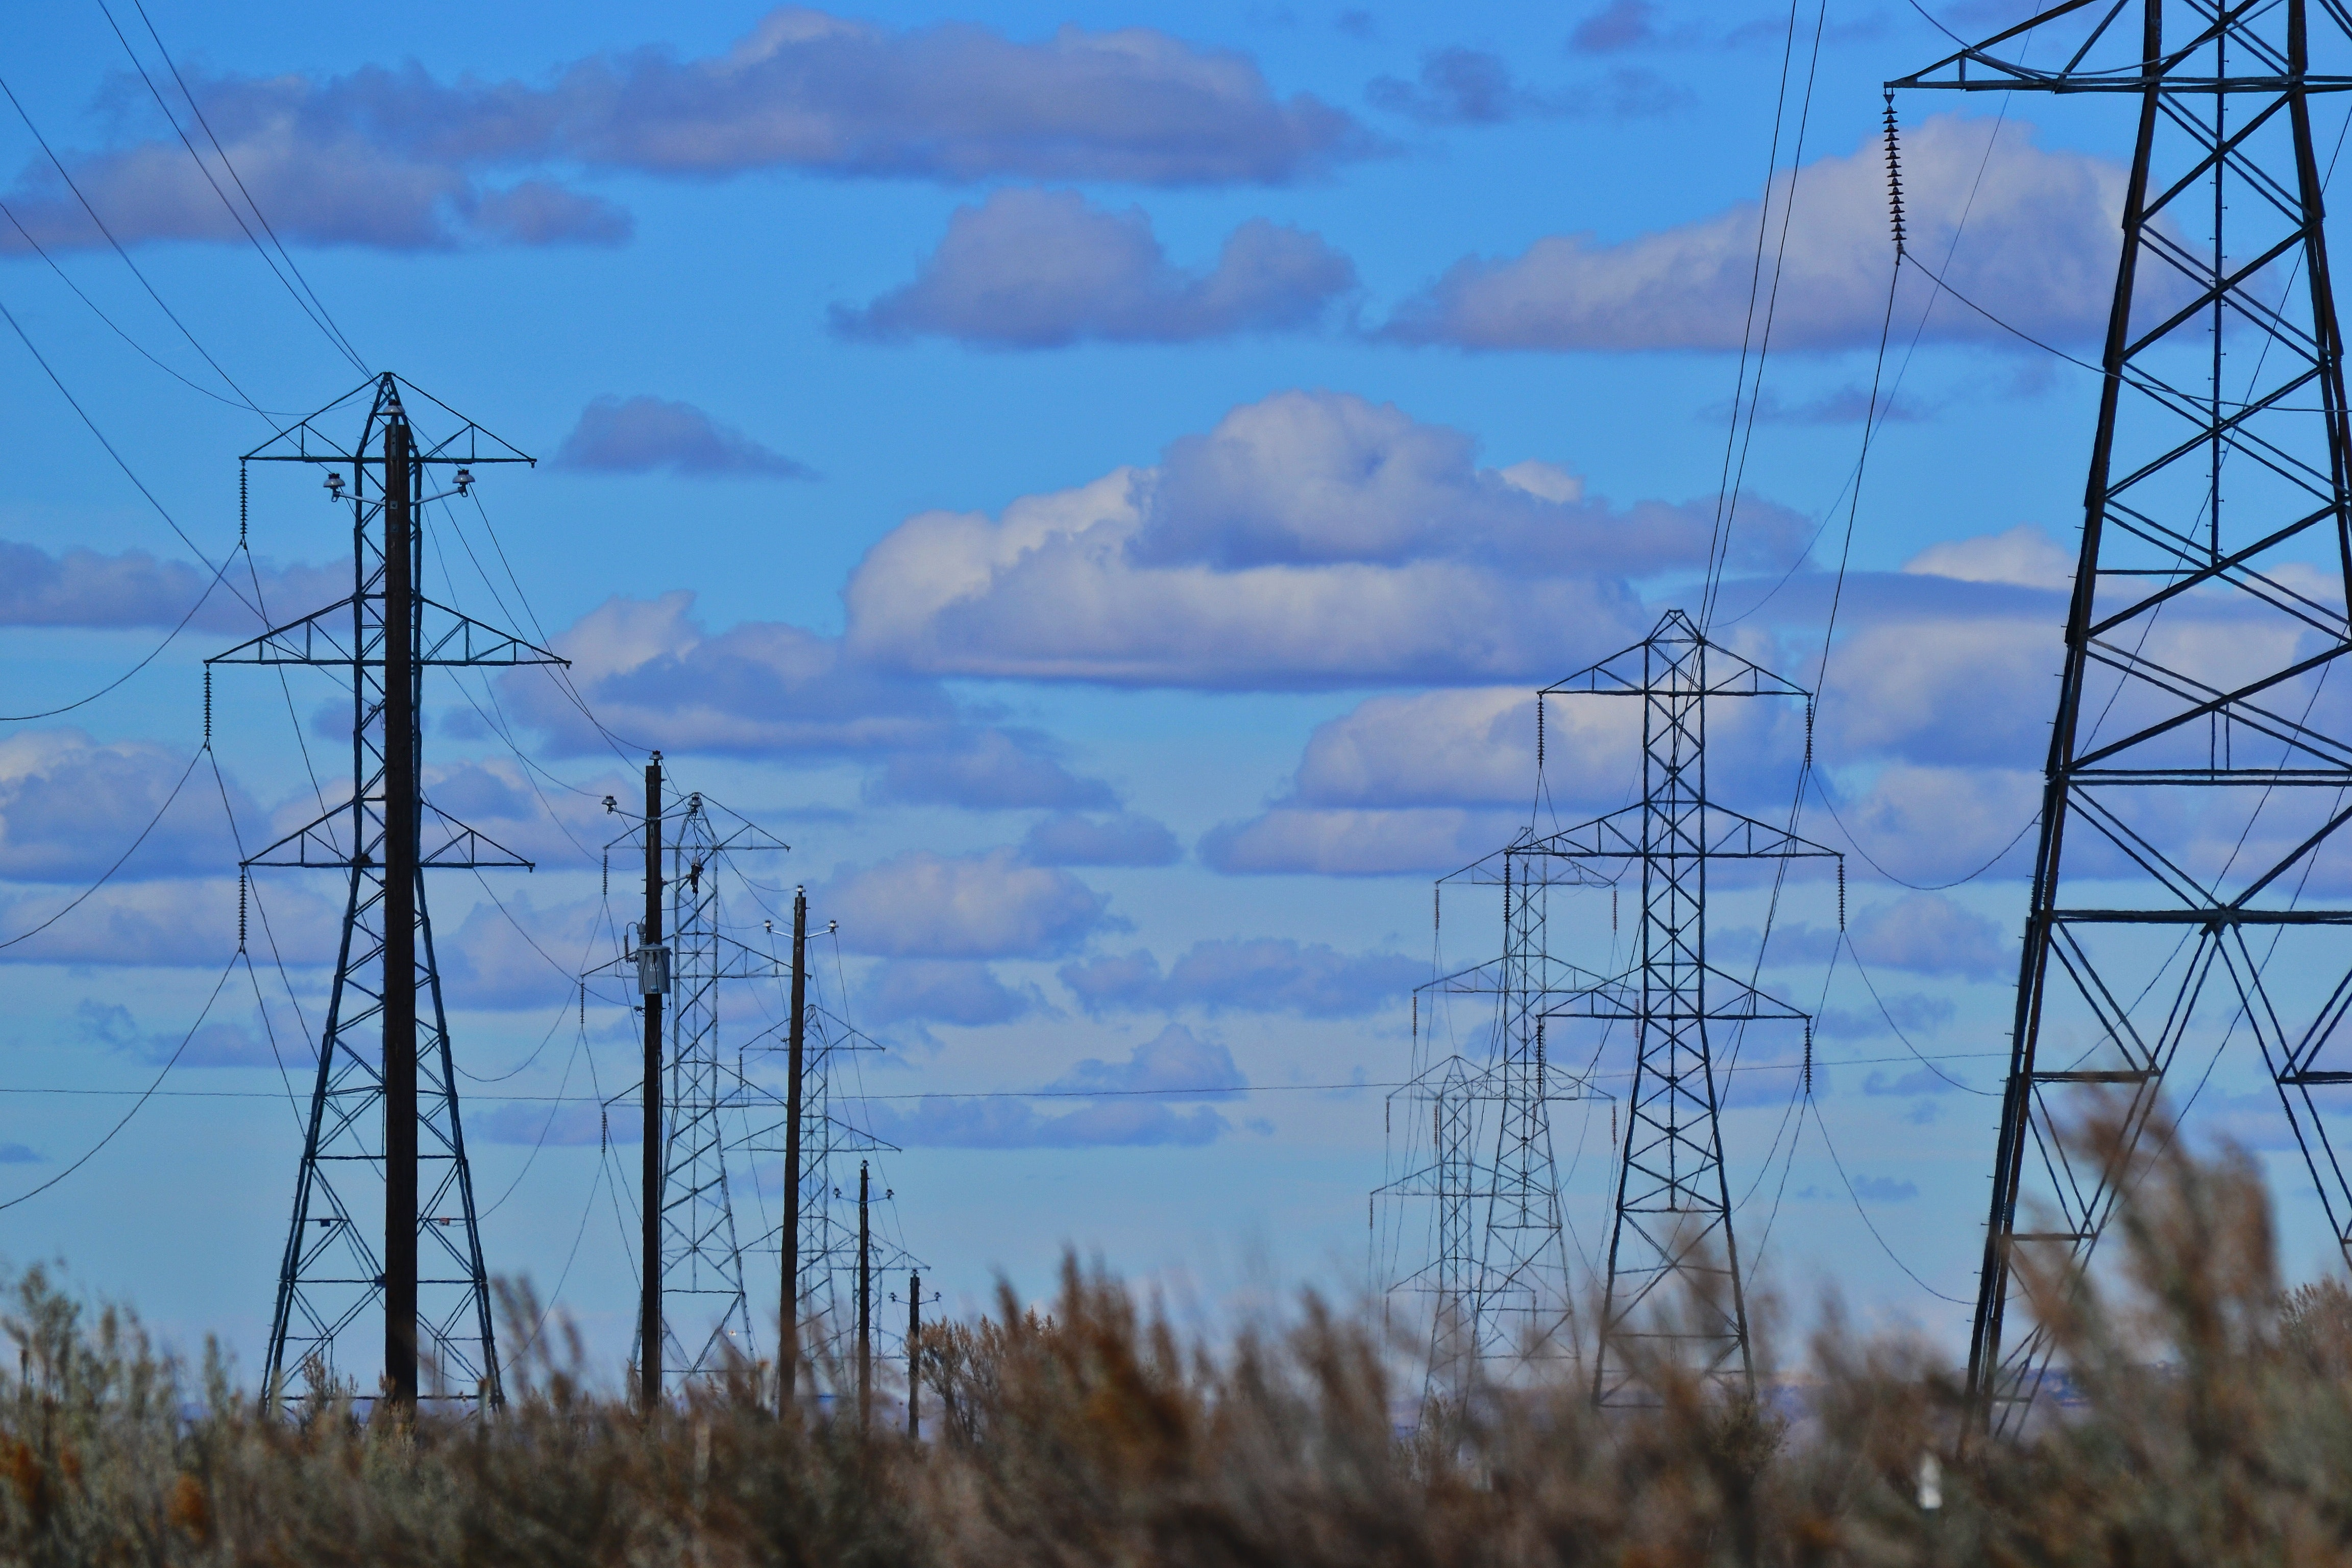 Electrical towers in the field against the blue sky photo